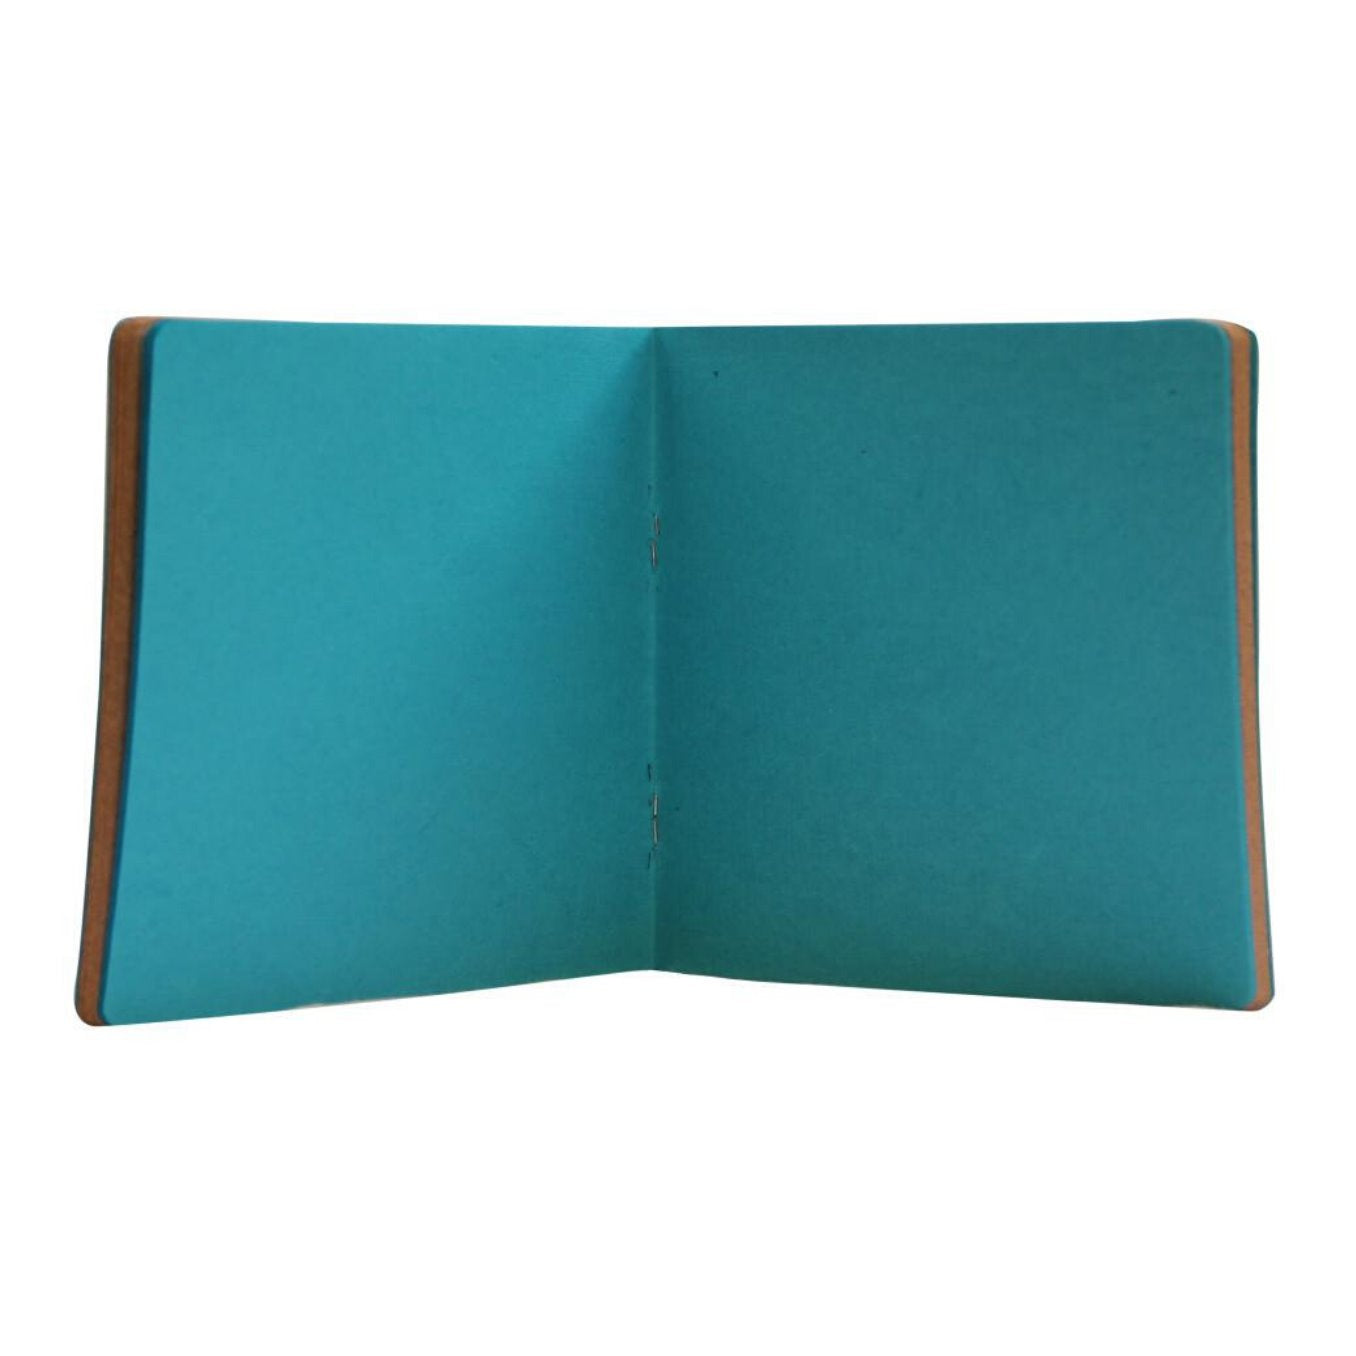 Walking Ele Square Diary Blue - Green The Map Upcycled Recycled Fairtrade Ecofriendly